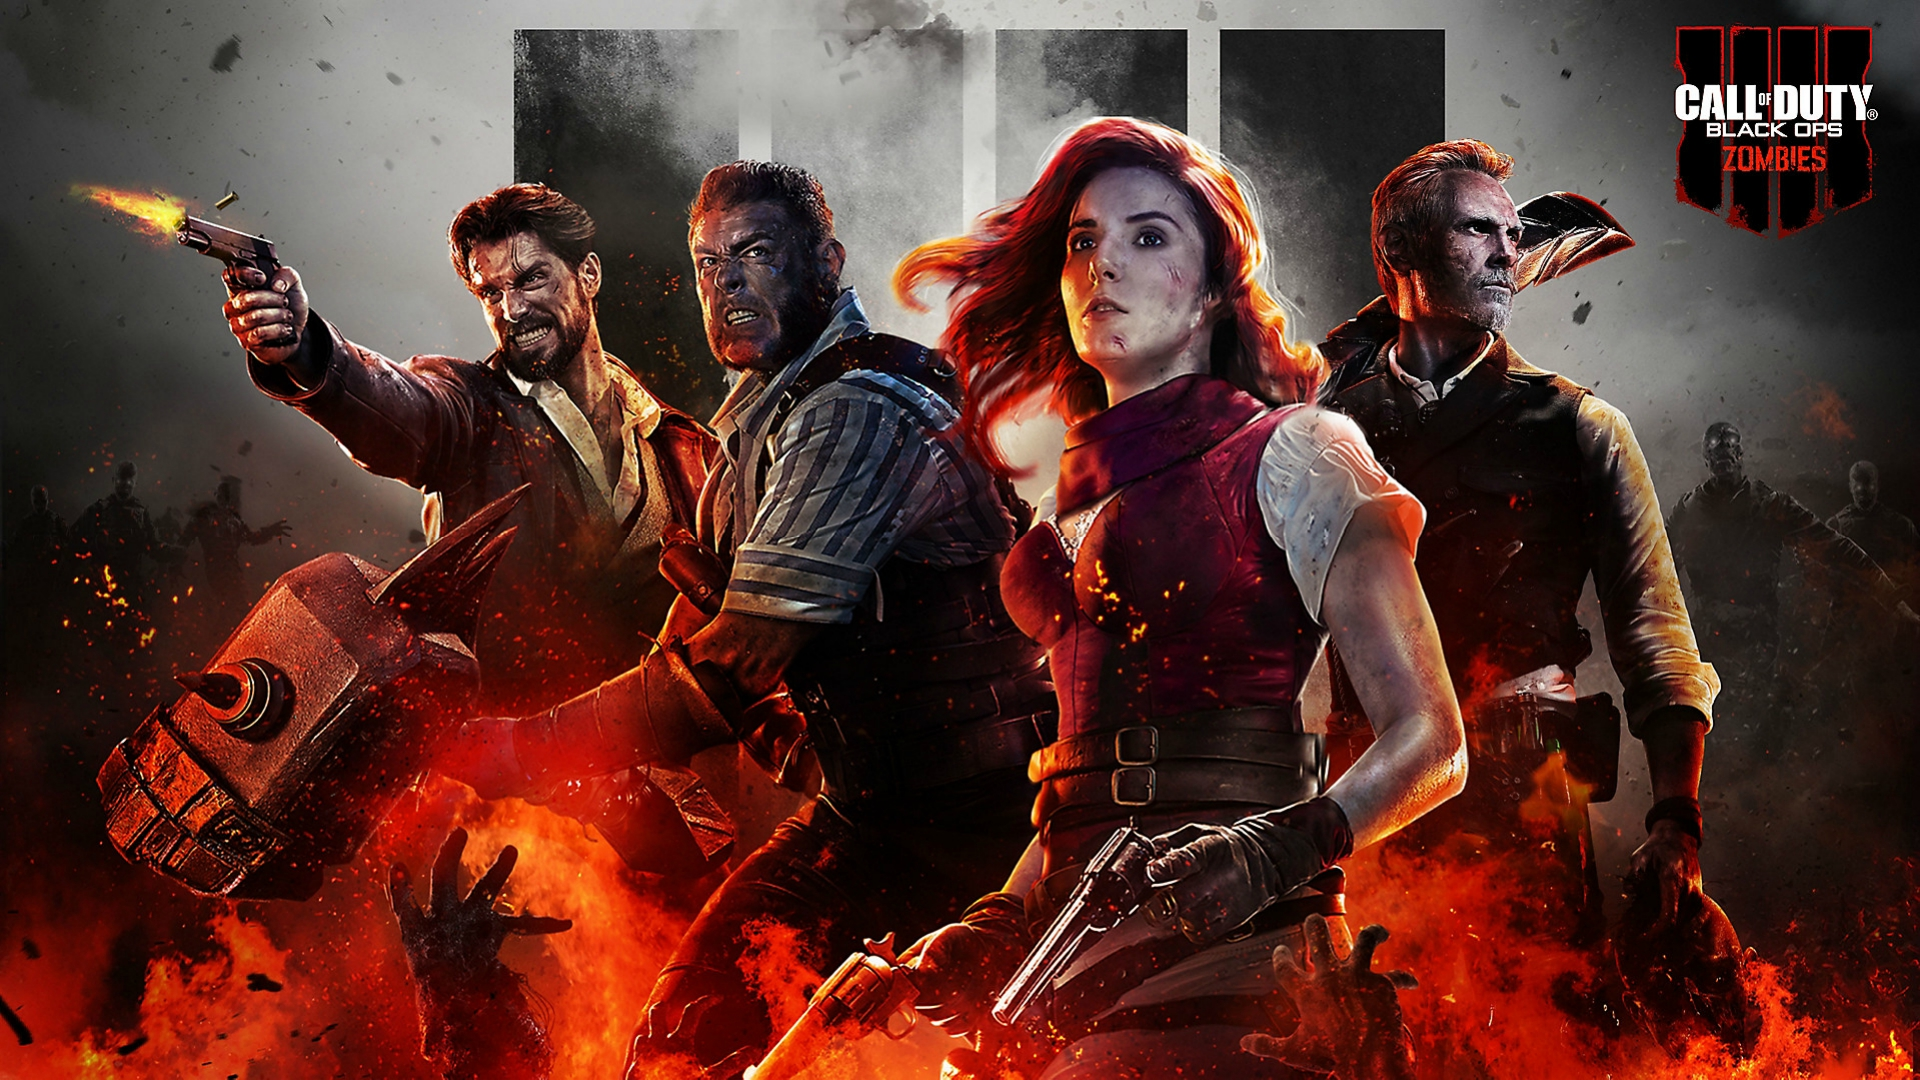 Call of Duty Black Ops 4 Zombies HD Wallpaper Background